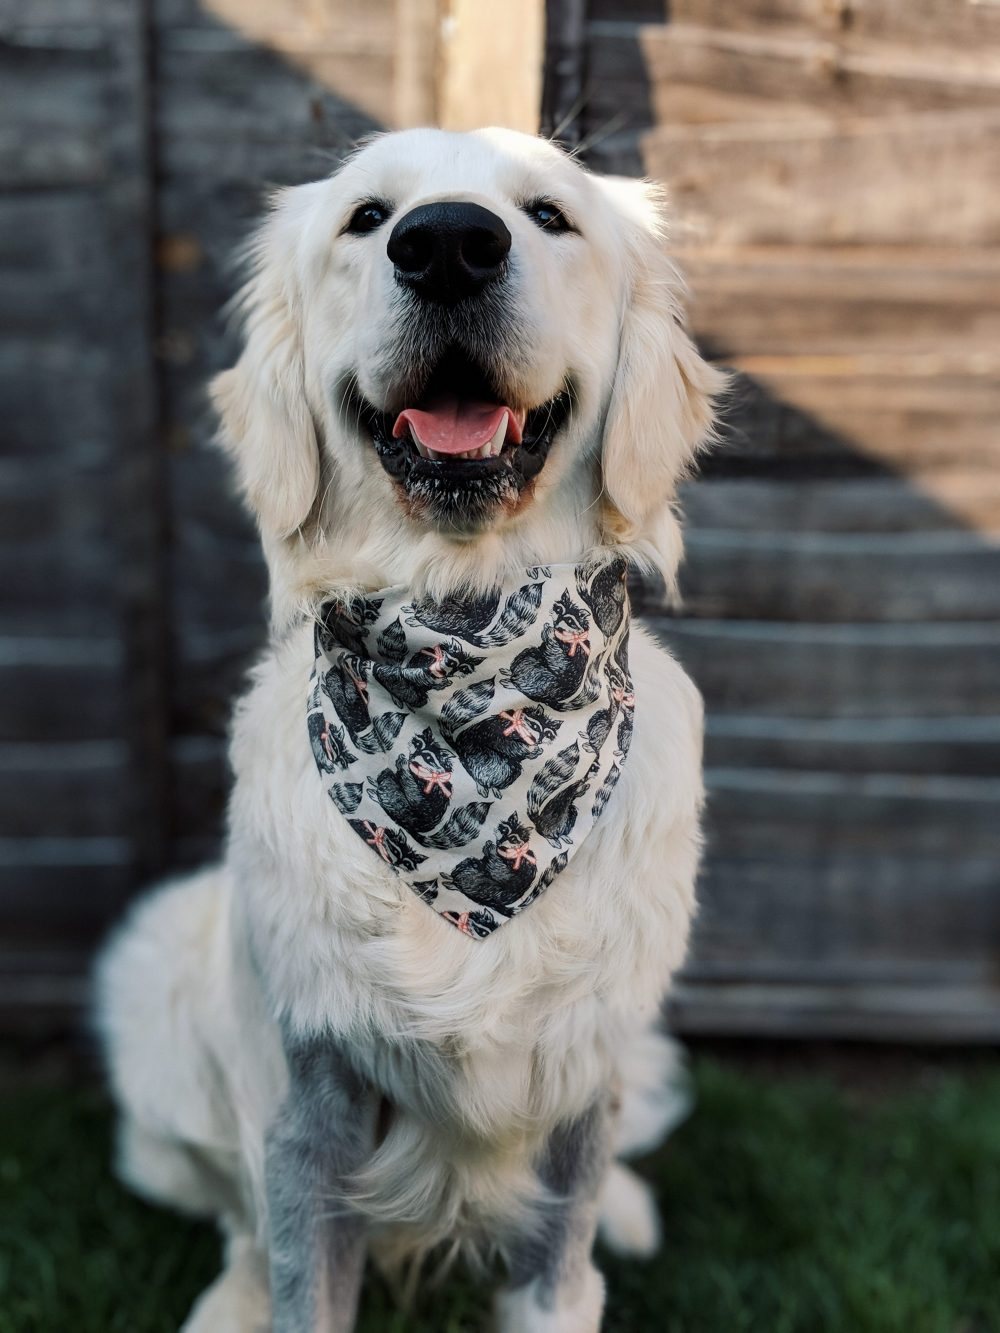 Looking dapper in his new bandana